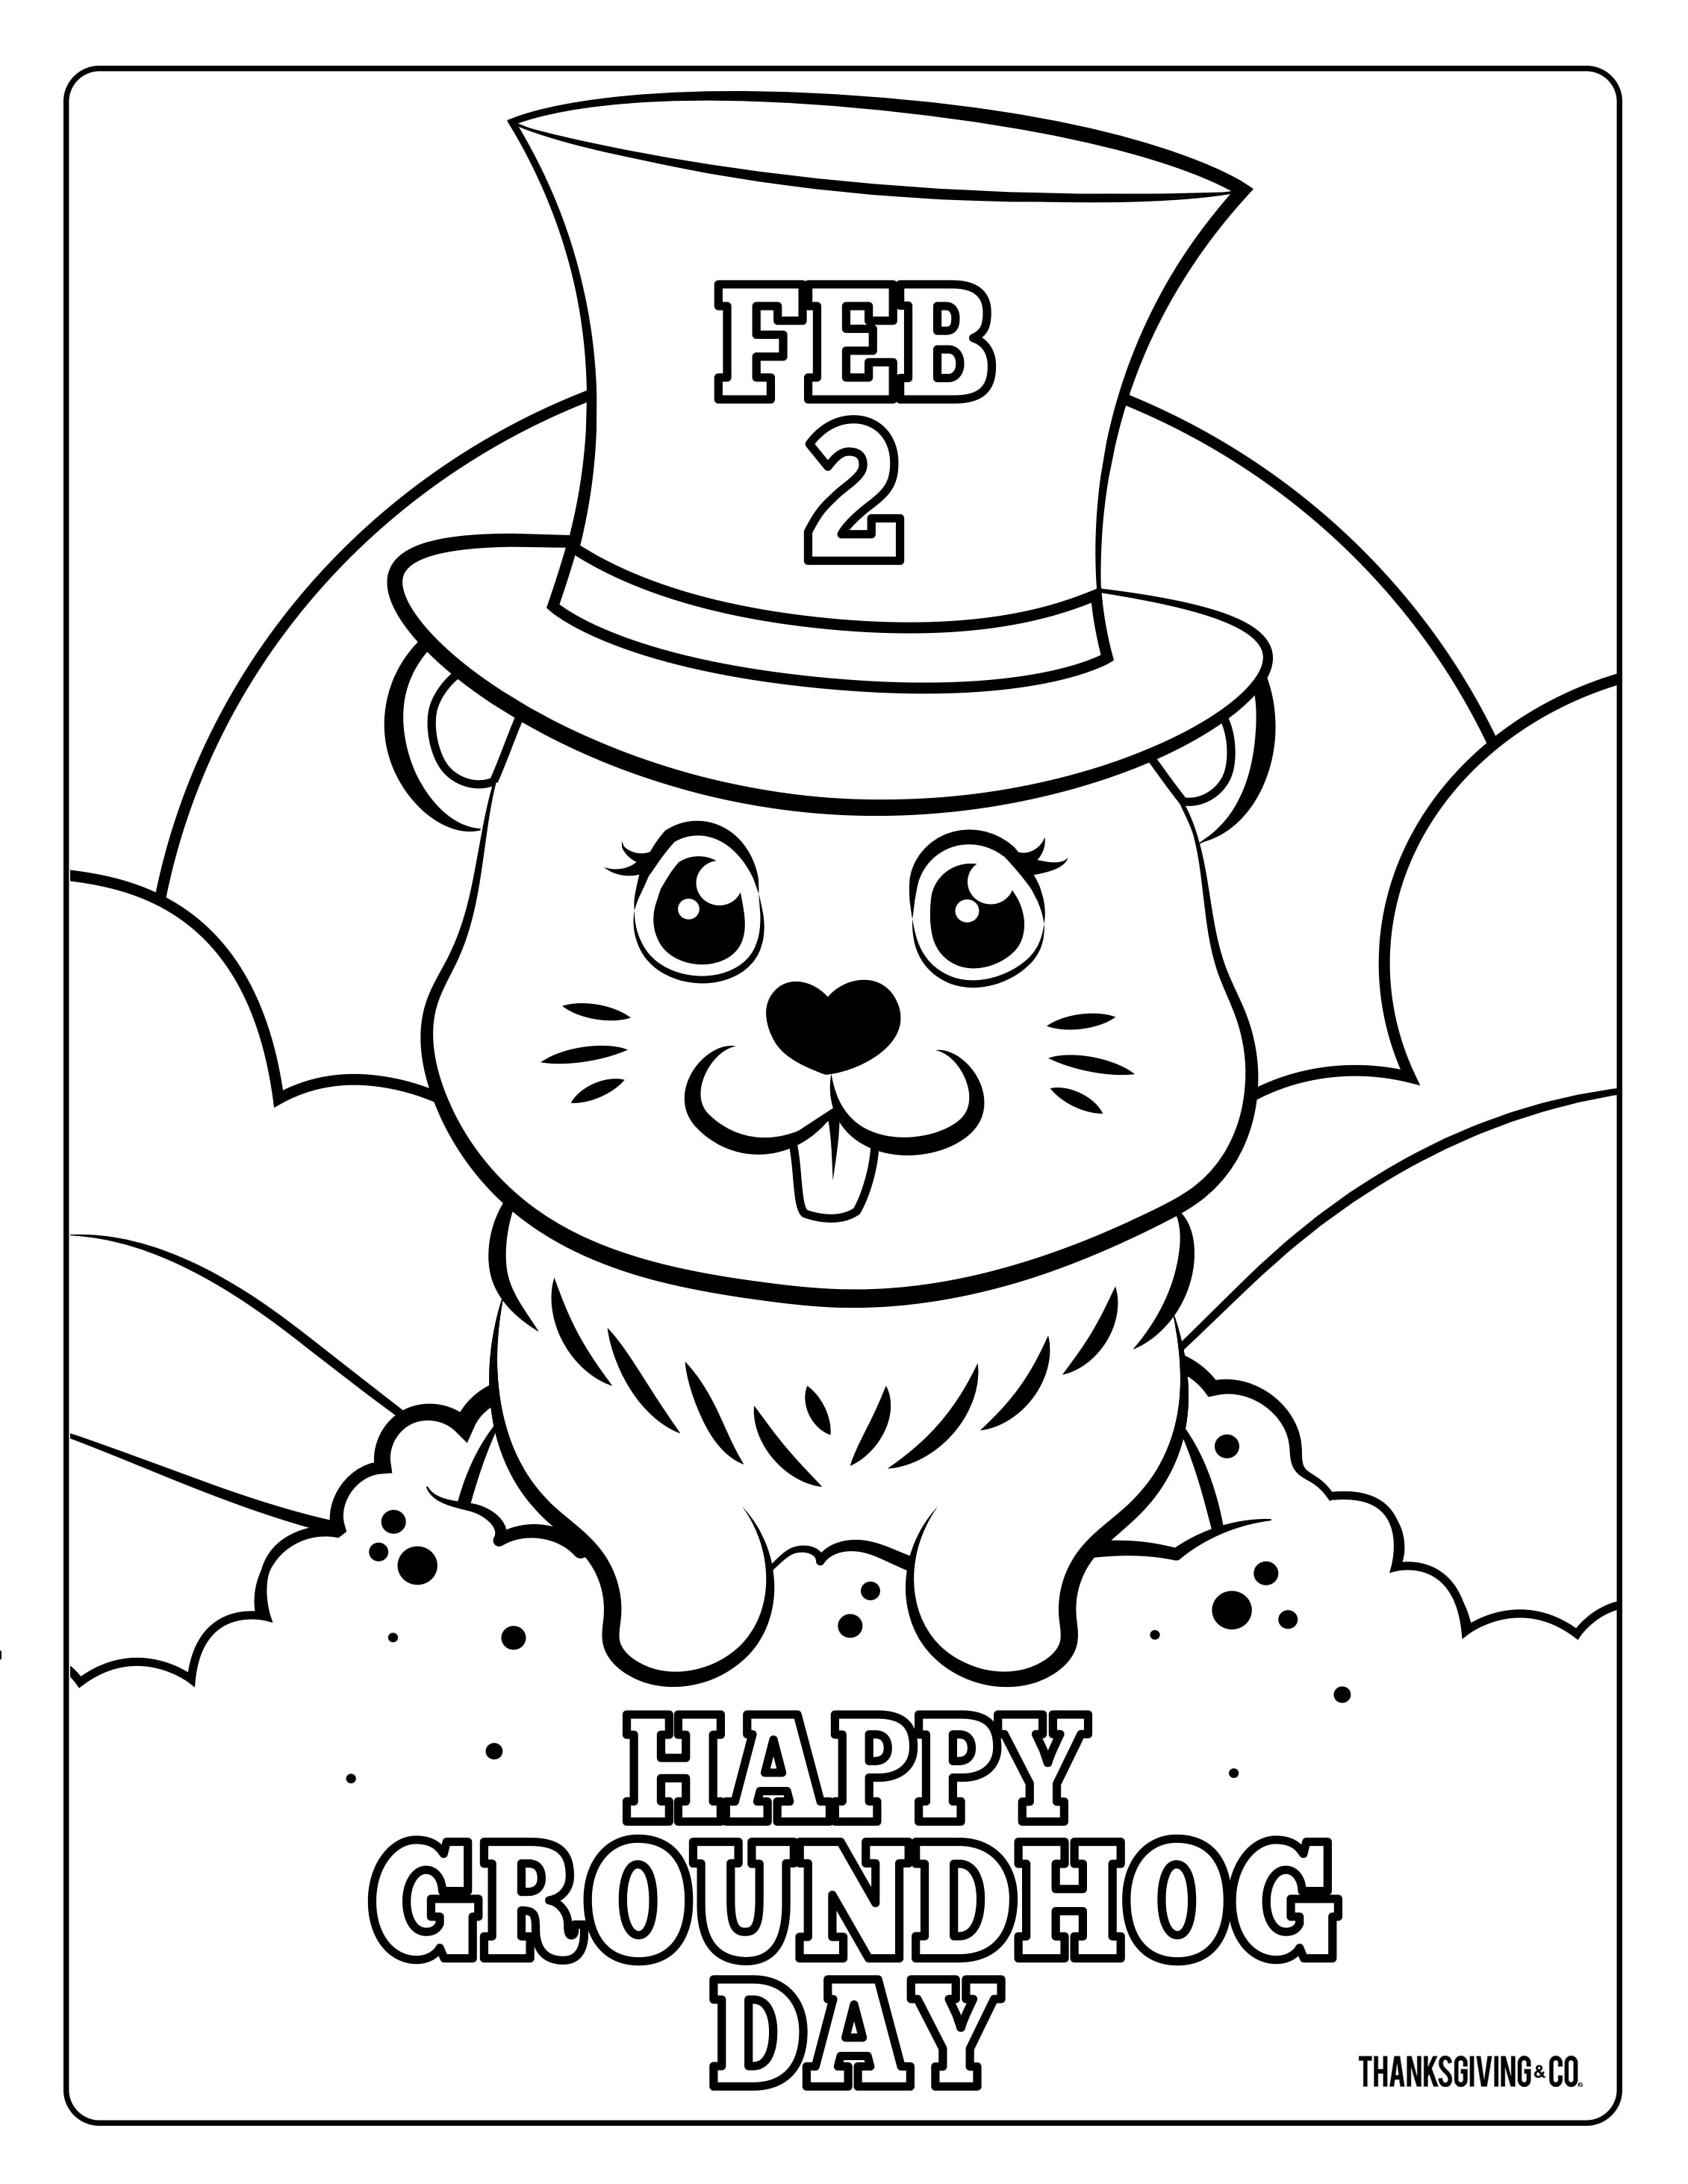 4 Adorable Groundhog Day Coloring Pages For Kids